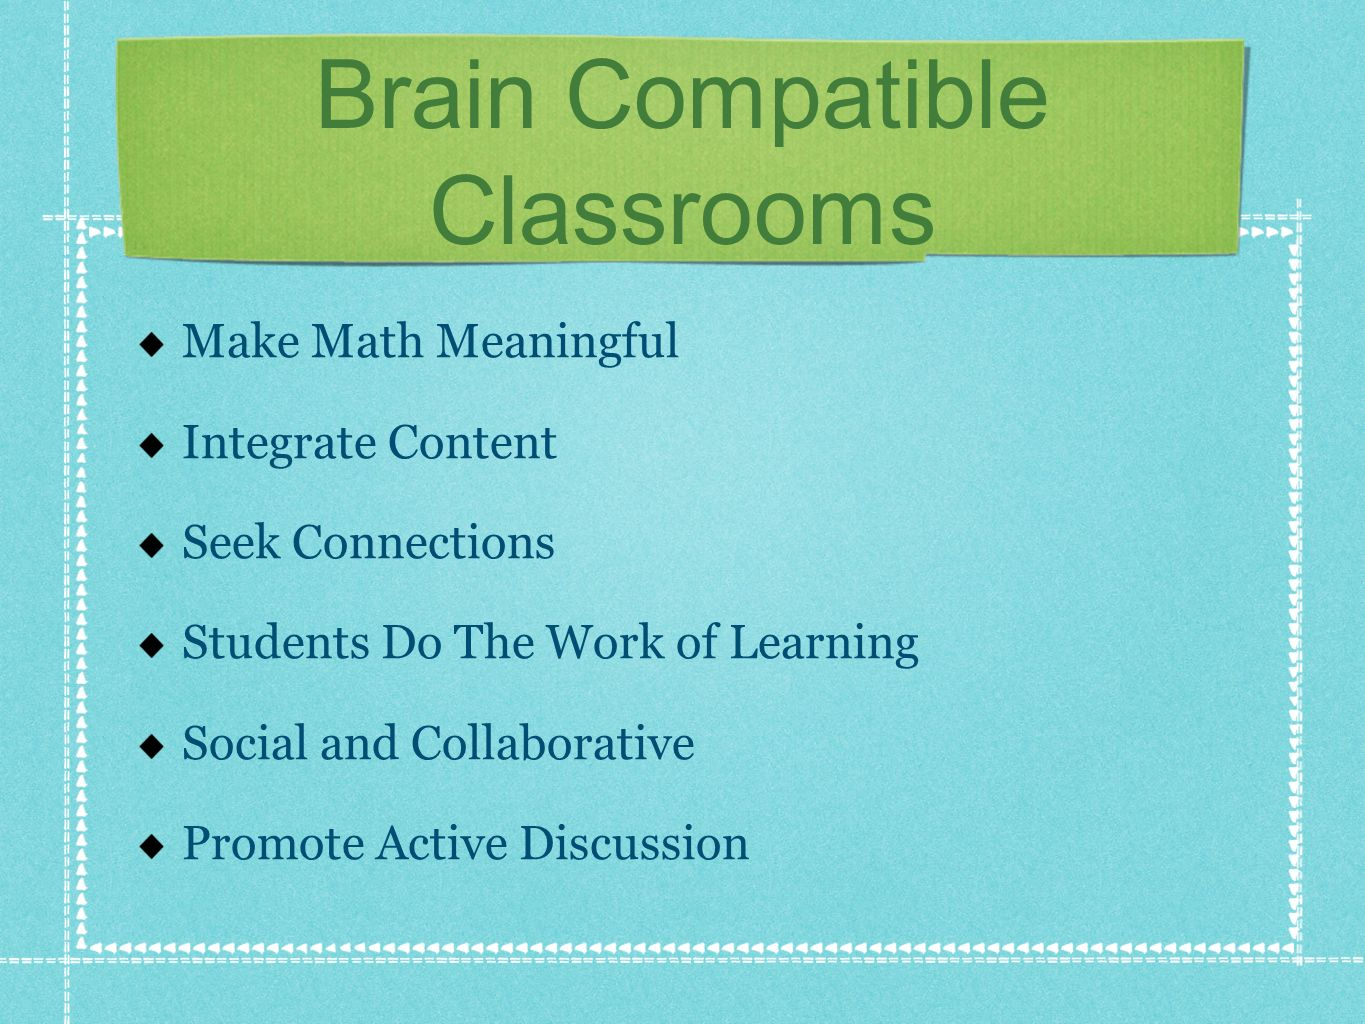 Brain Compatible Classrooms Make Math Meaningful Integrate Content Seek Connections Students Do The Work of Learning Social and Collaborative Promote Active Discussion